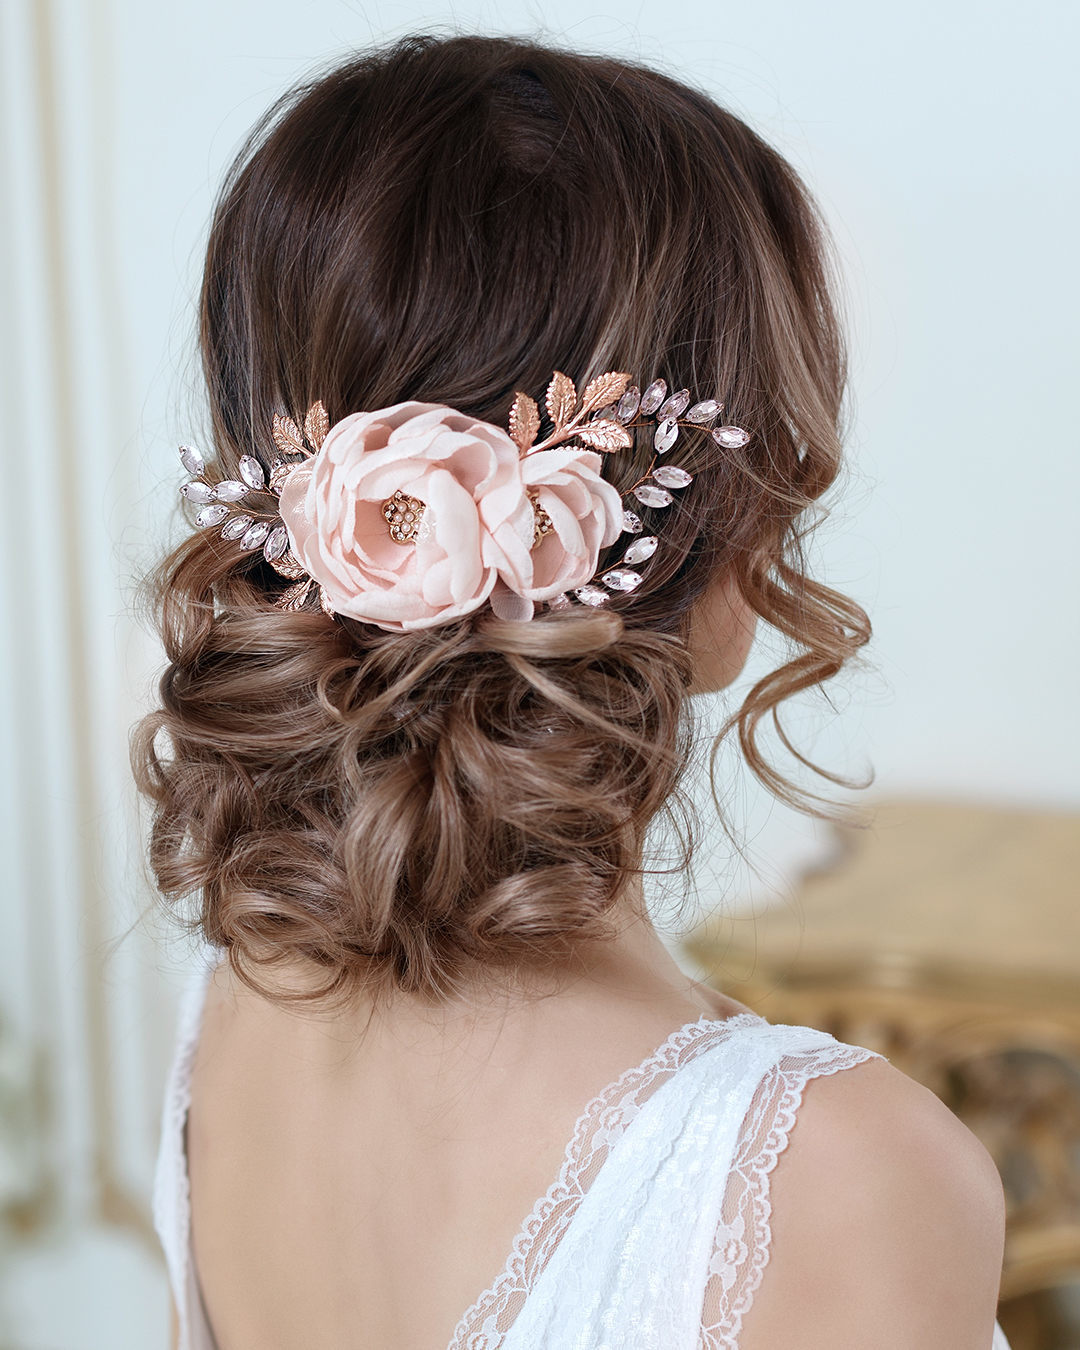 Wedding hairstyles: Woman with dark brown hair with highlights with her hair styled into a messy updo, with flowers in it, wearing a wedding dress